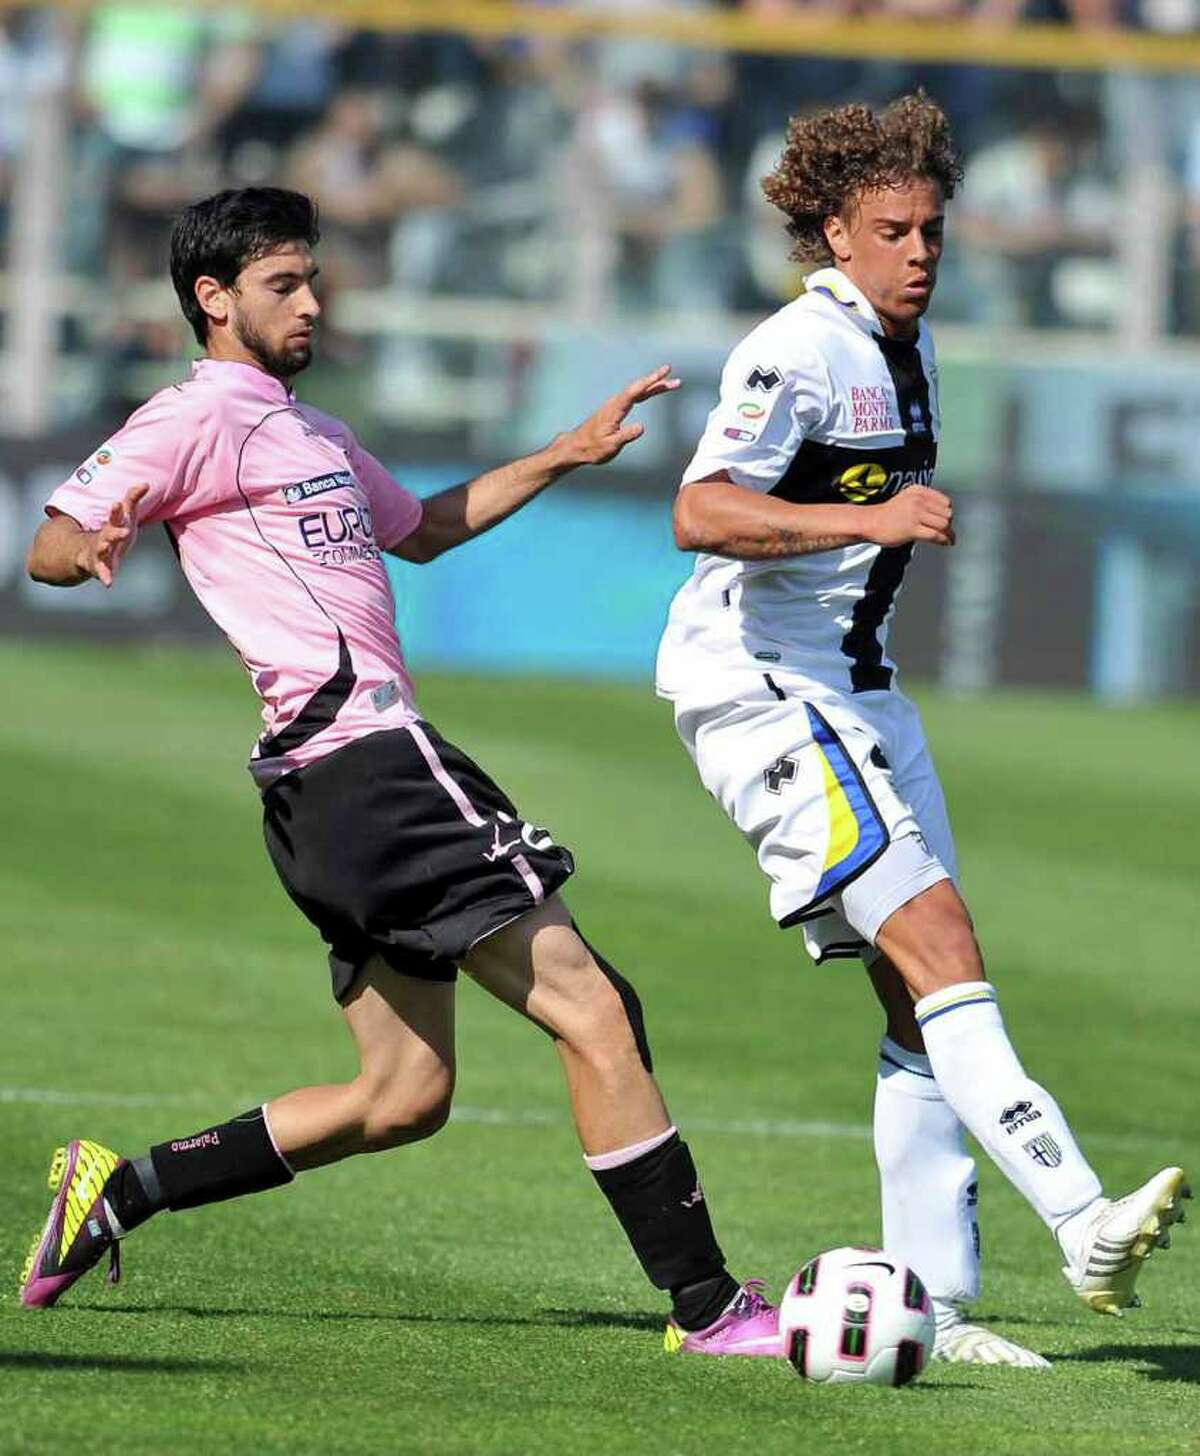 Palermo's Javier Pastore, left, of Argentina, tries to pass Parma Swiss defender Rolf Feltscher during their Serie A soccer match against Parma, at Parma's Tardini stadium, Italy, Sunday, May 1, 2011. Parma won 3-1. (AP Photo/Massimo Morelli,LaPresse) ITALY OUT